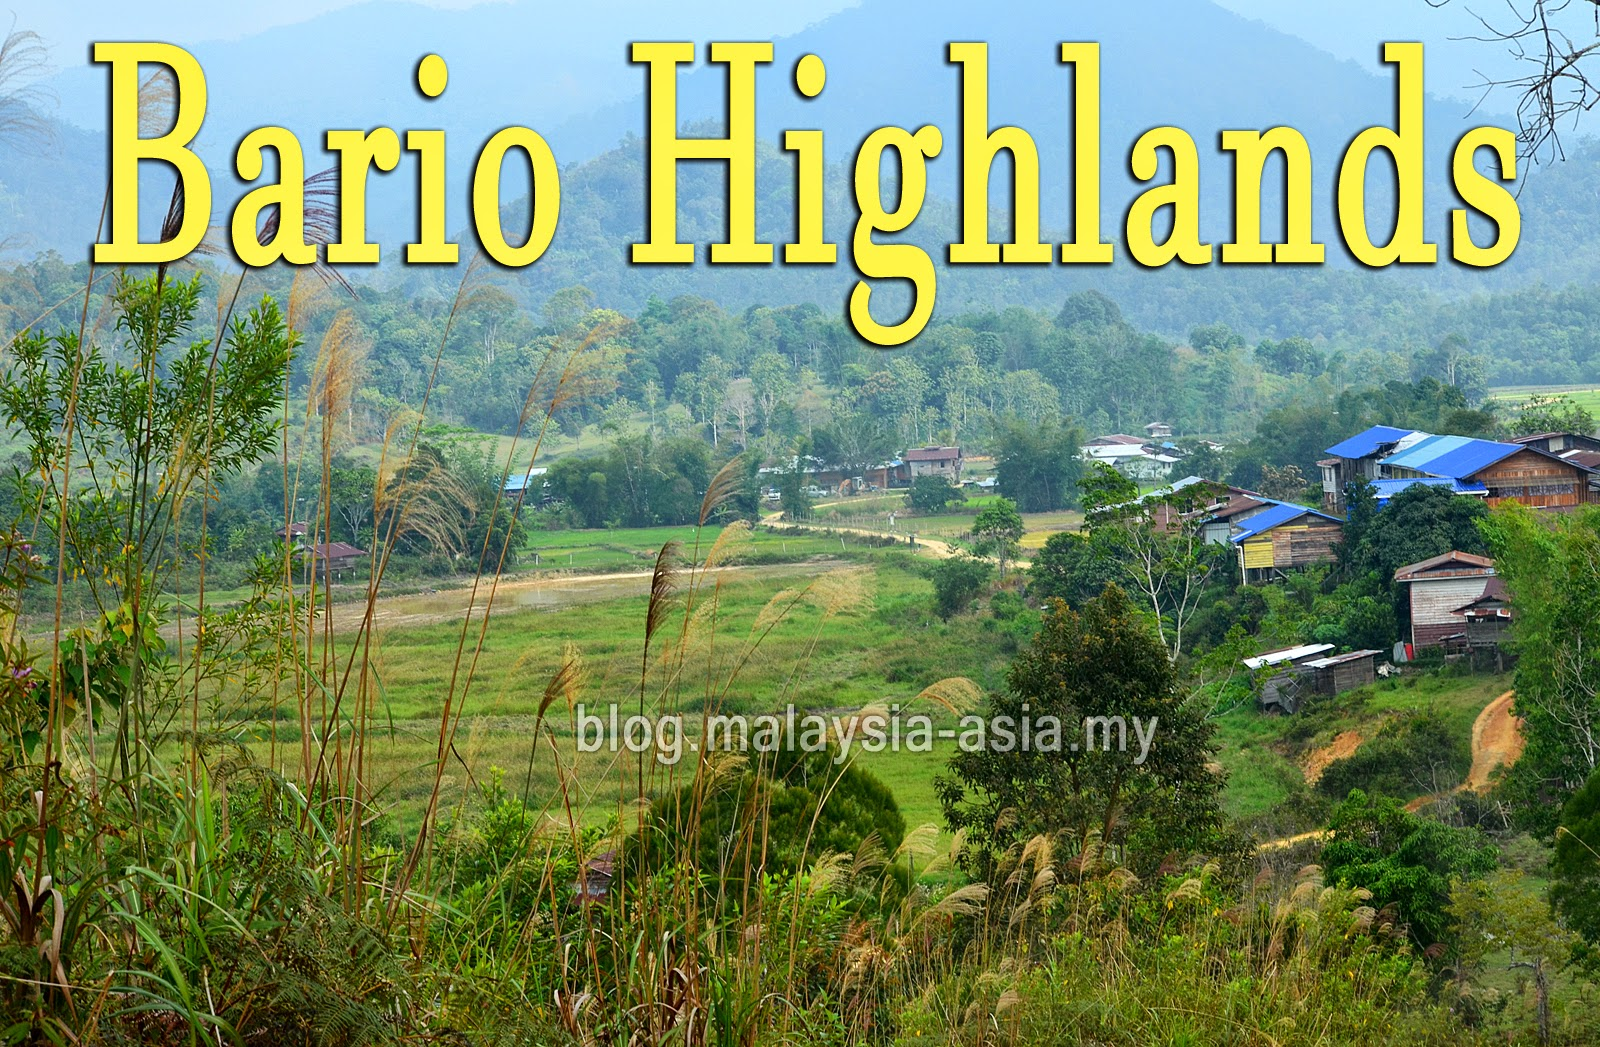 Travelling to Bario Highlands